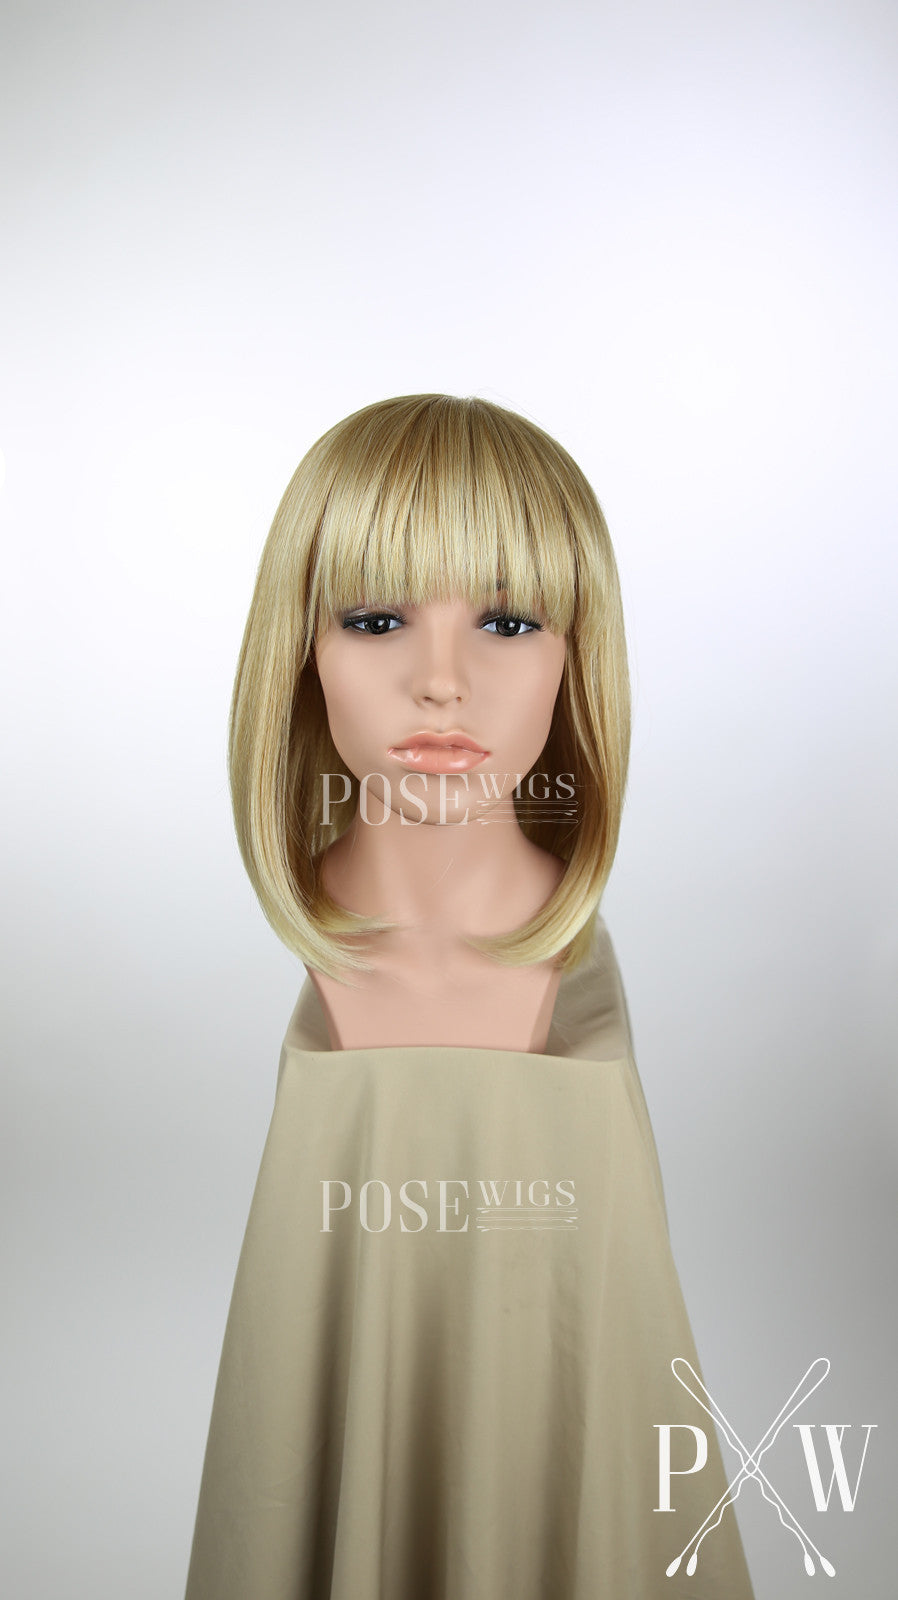 Strawberry Blonde Ombre Medium Length Straight Bob with Bangs Fashion Wig HSDAR91